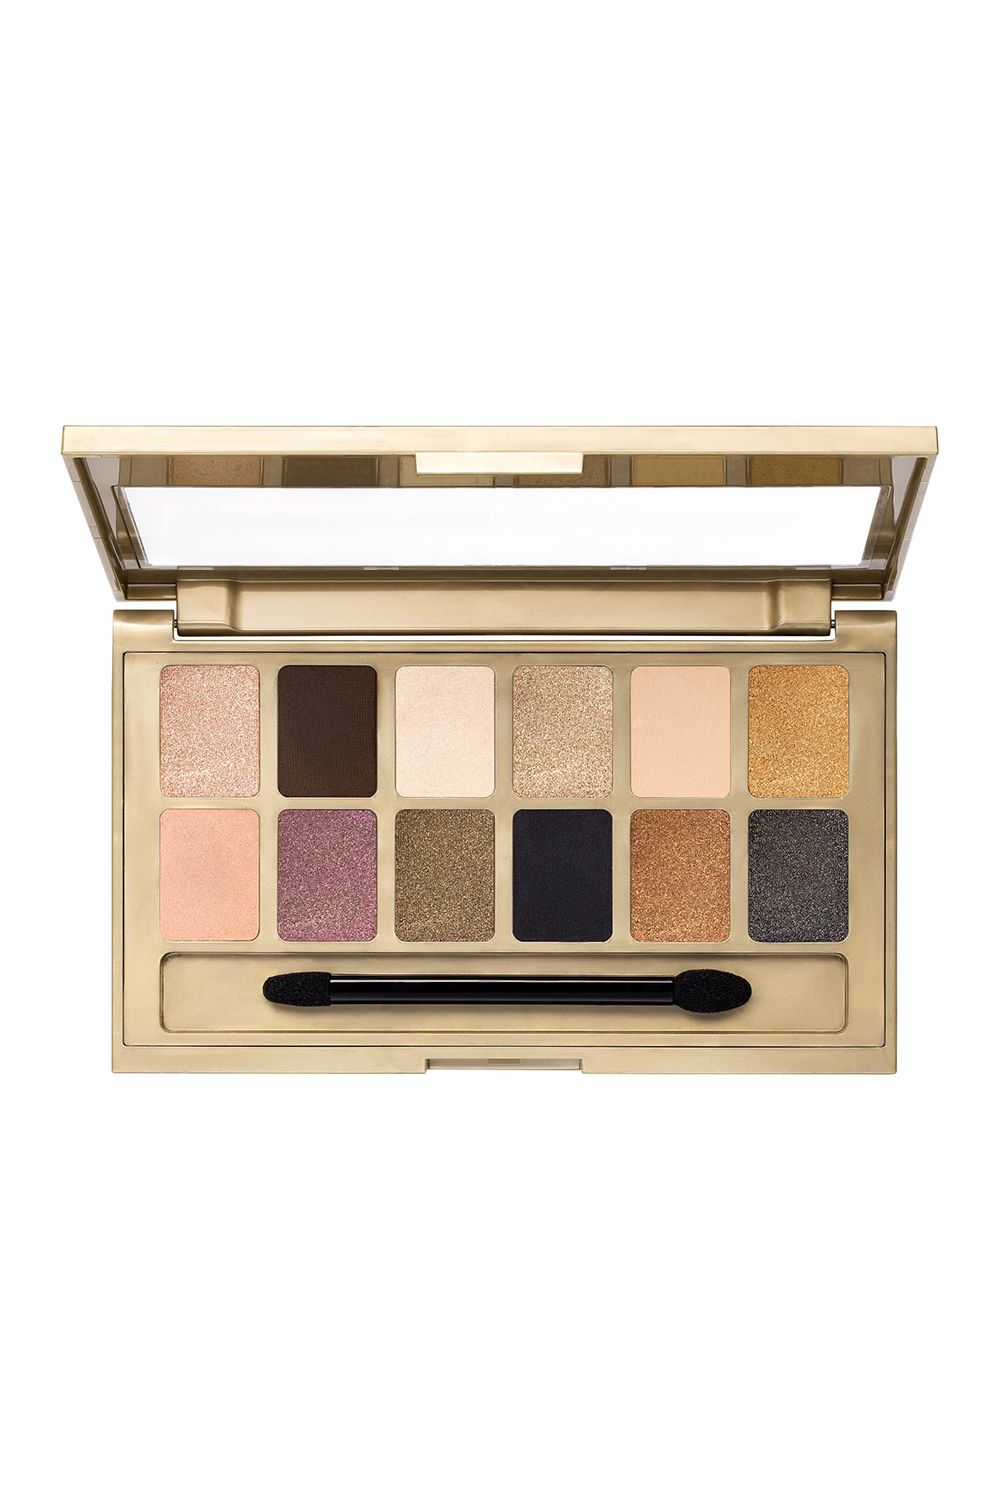 "<p>The name of this palette says it all: Each of these 12 shimmer-packed shadows gleam like a wedge of gold, at one-trillionth of the cost.<br></p><p><i data-redactor-tag=""i"">Maybelline The 24KT Nudes Eyeshadow Palette, $8.99</i></p><p><strong data-redactor-tag=""strong"">BUY IT: <a href=""https://www.target.com/p/maybelline-174-the24kt-nudes-eye-shadow-palette-120-0-34-oz/-/A-51168535"">target.com</a>. &nbsp&#x3B;</strong></p>"